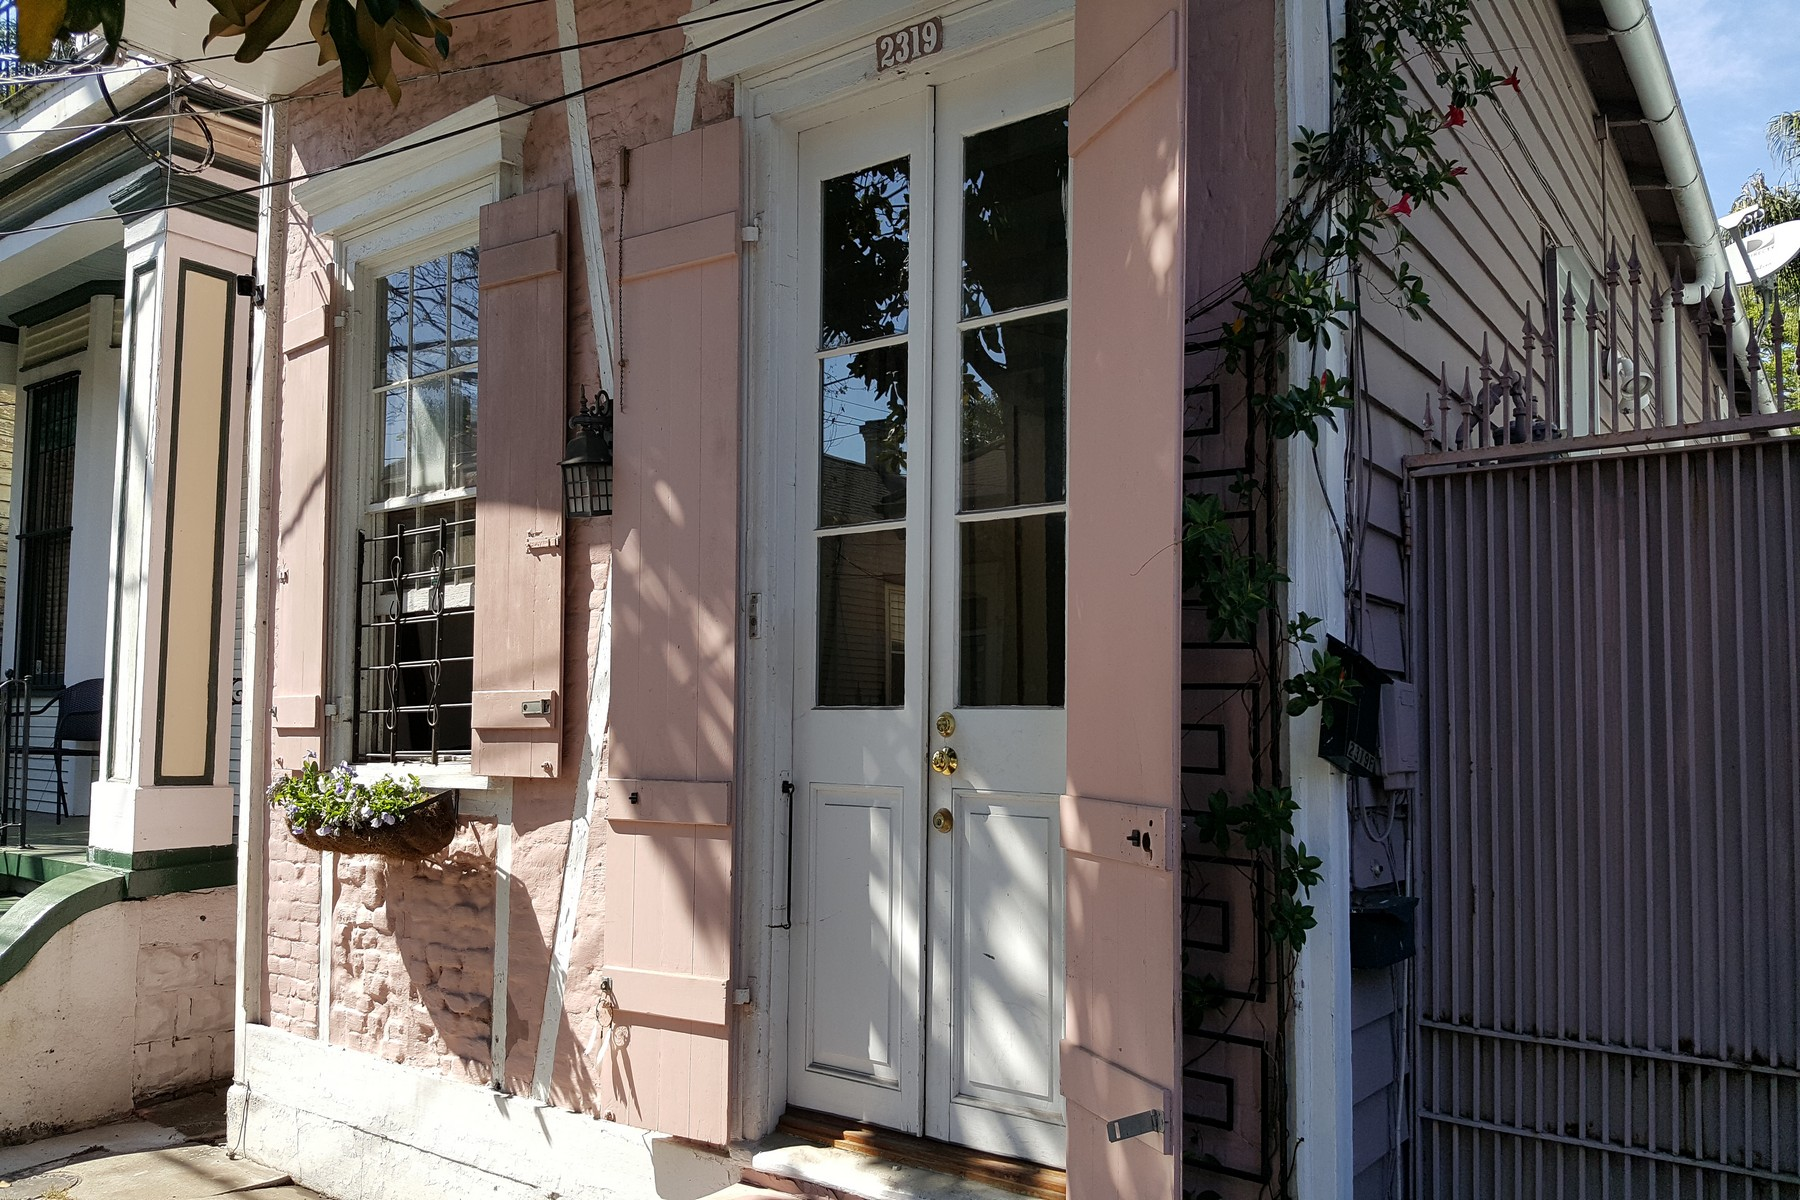 Condominium for Sale at 2319 Dauphine Street, #F 2319 Dauphine St #F New Orleans, Louisiana 70117 United States